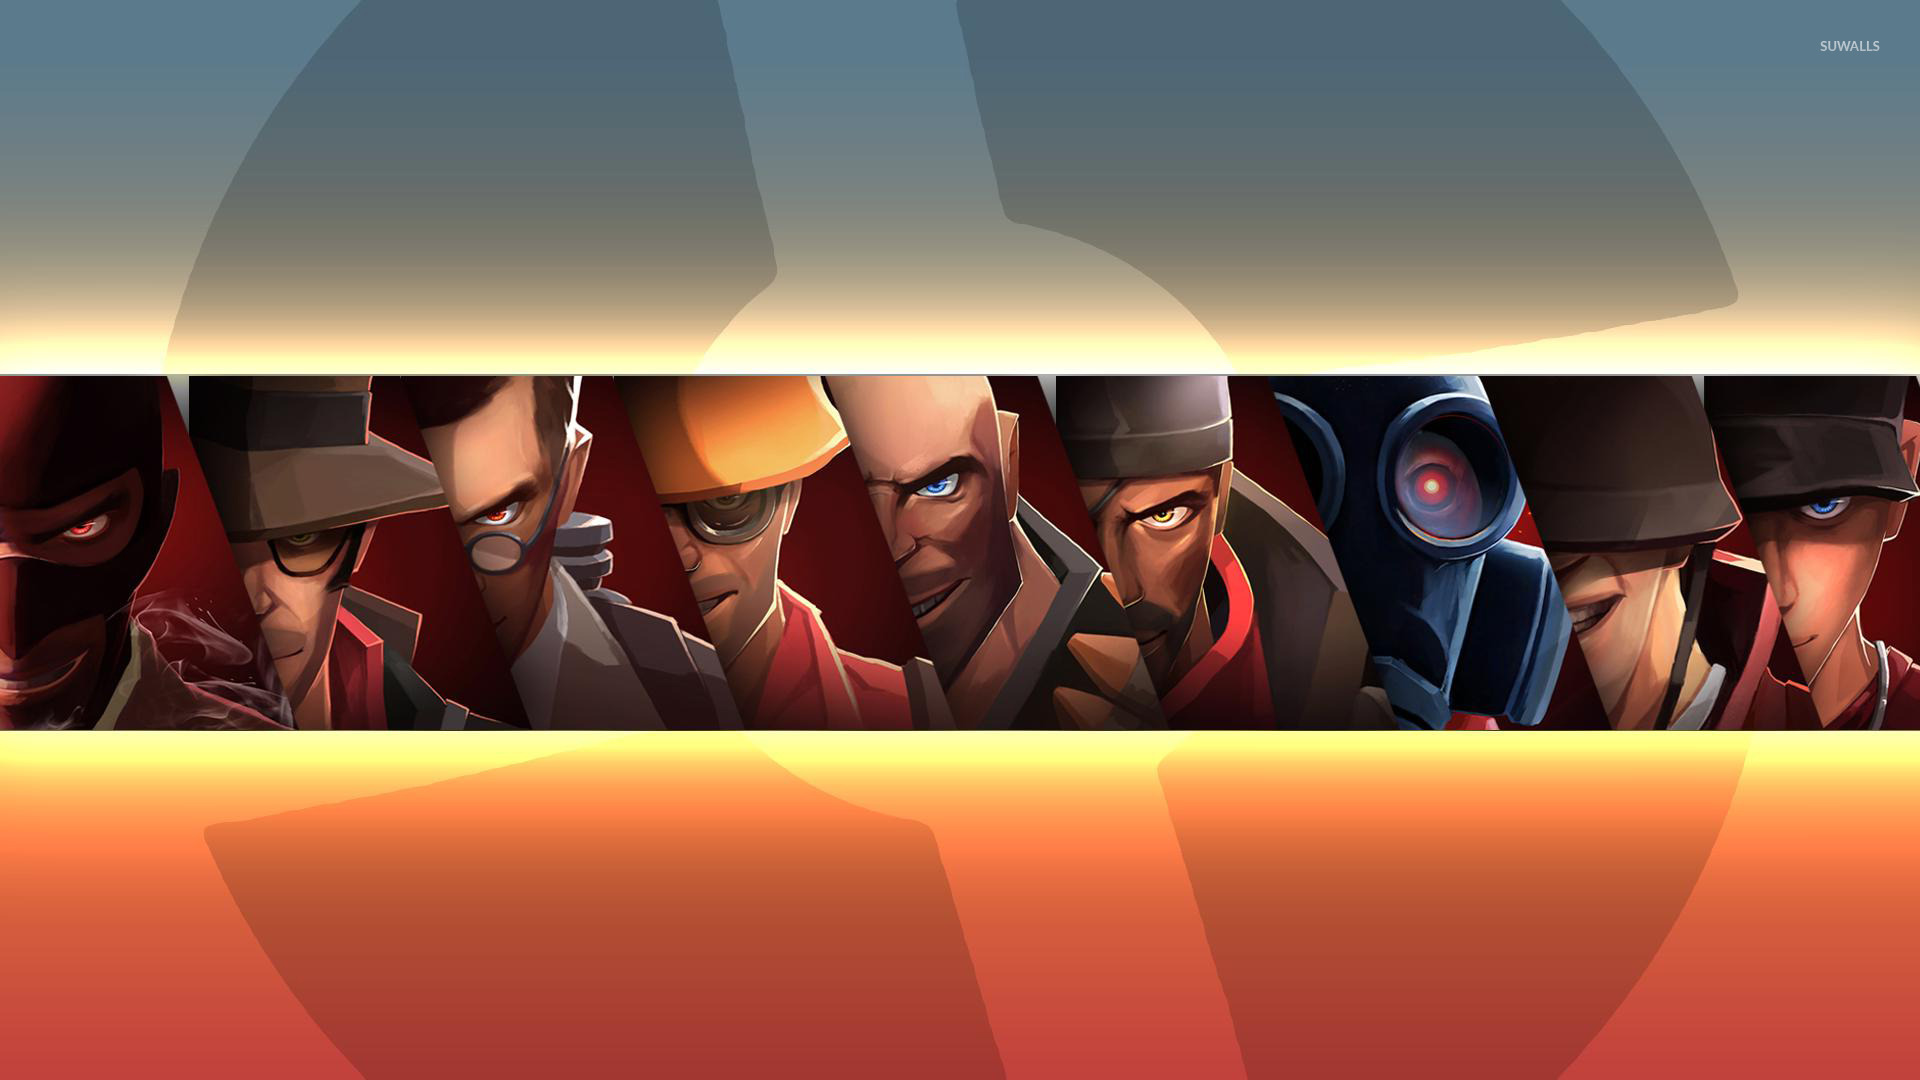 team fortress 2 6 wallpaper game wallpapers 21048